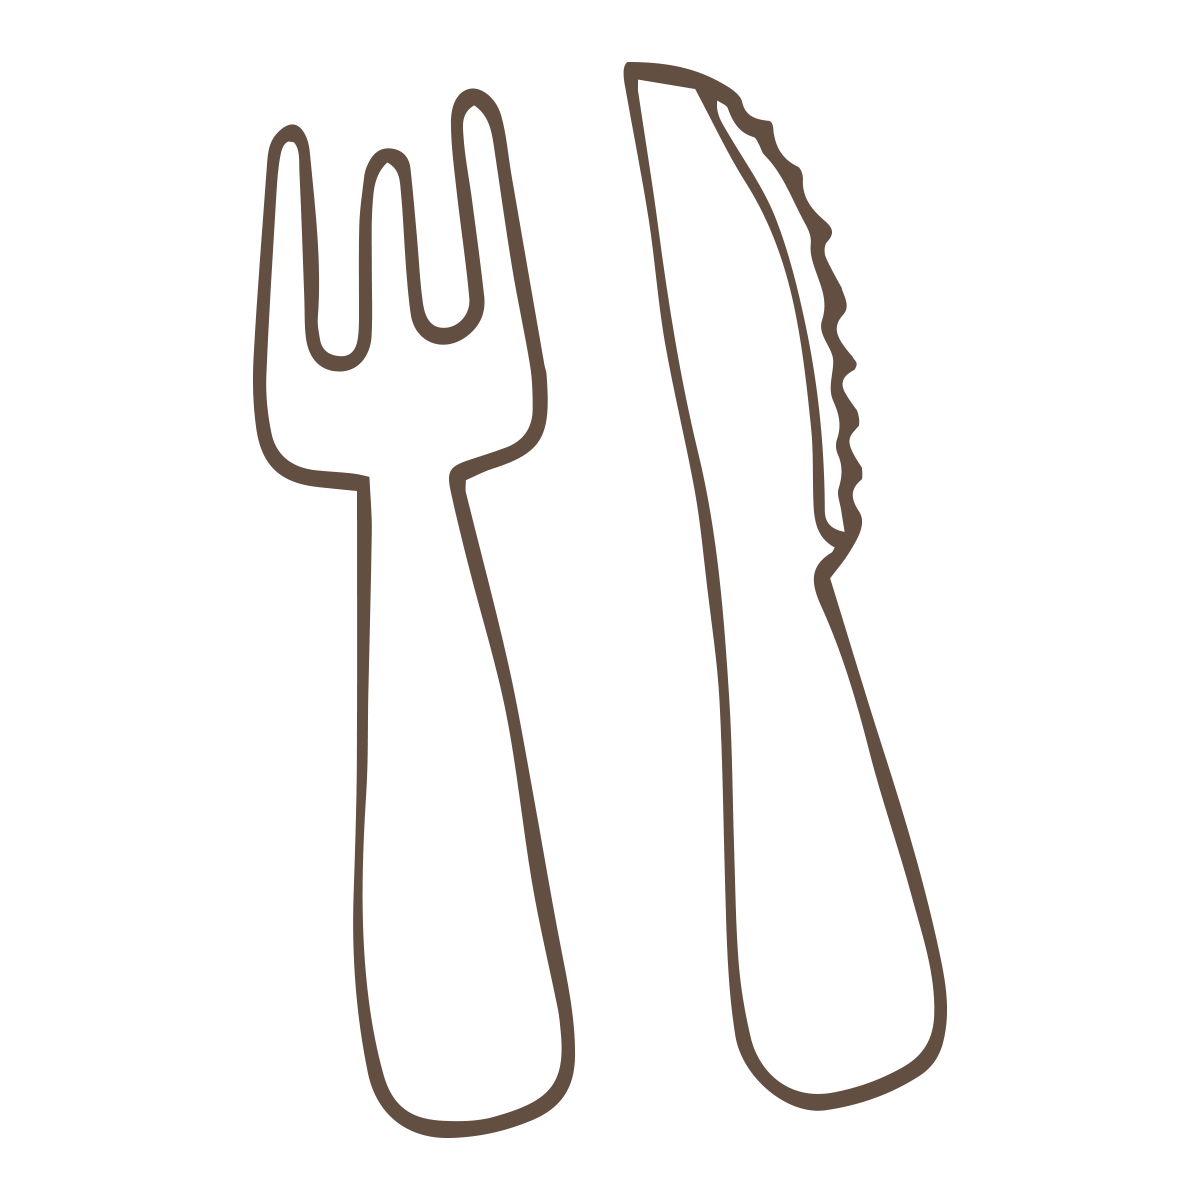 Knife And Fork Drawing